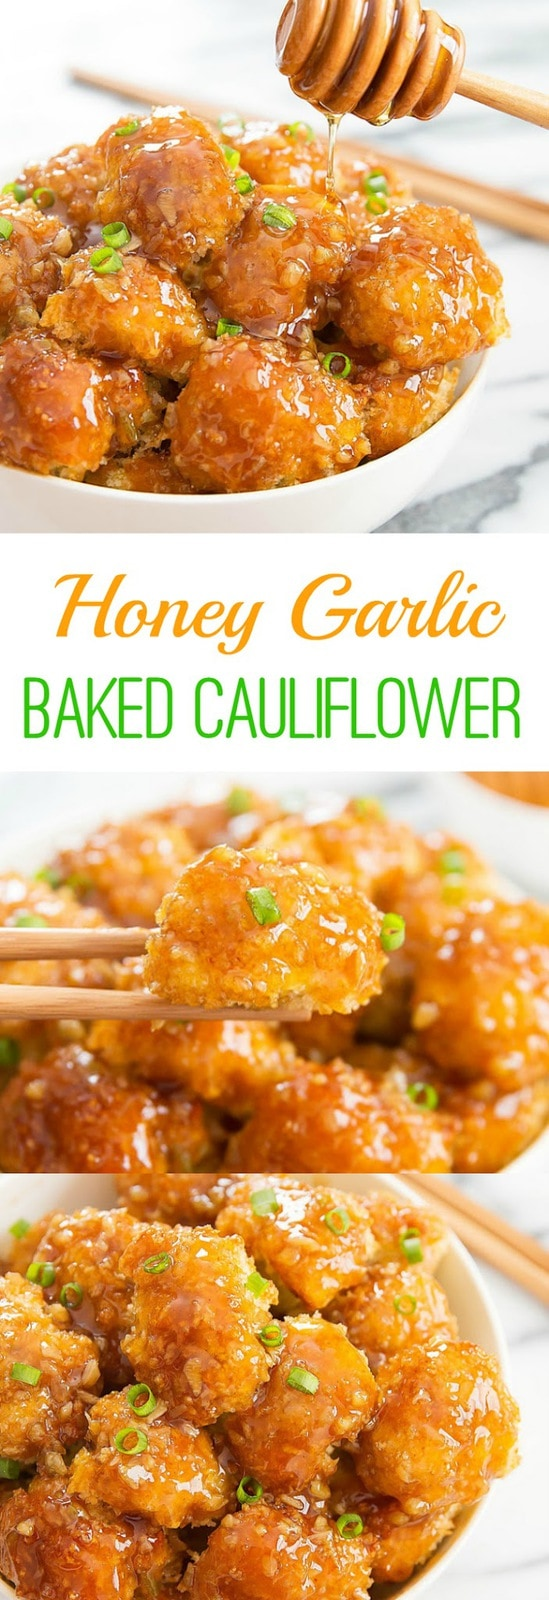 Honey Garlic Baked Cauliflower. Crunchy baked breaded cauliflower pieces are coated with honey garlic sauce. A great vegetarian option!